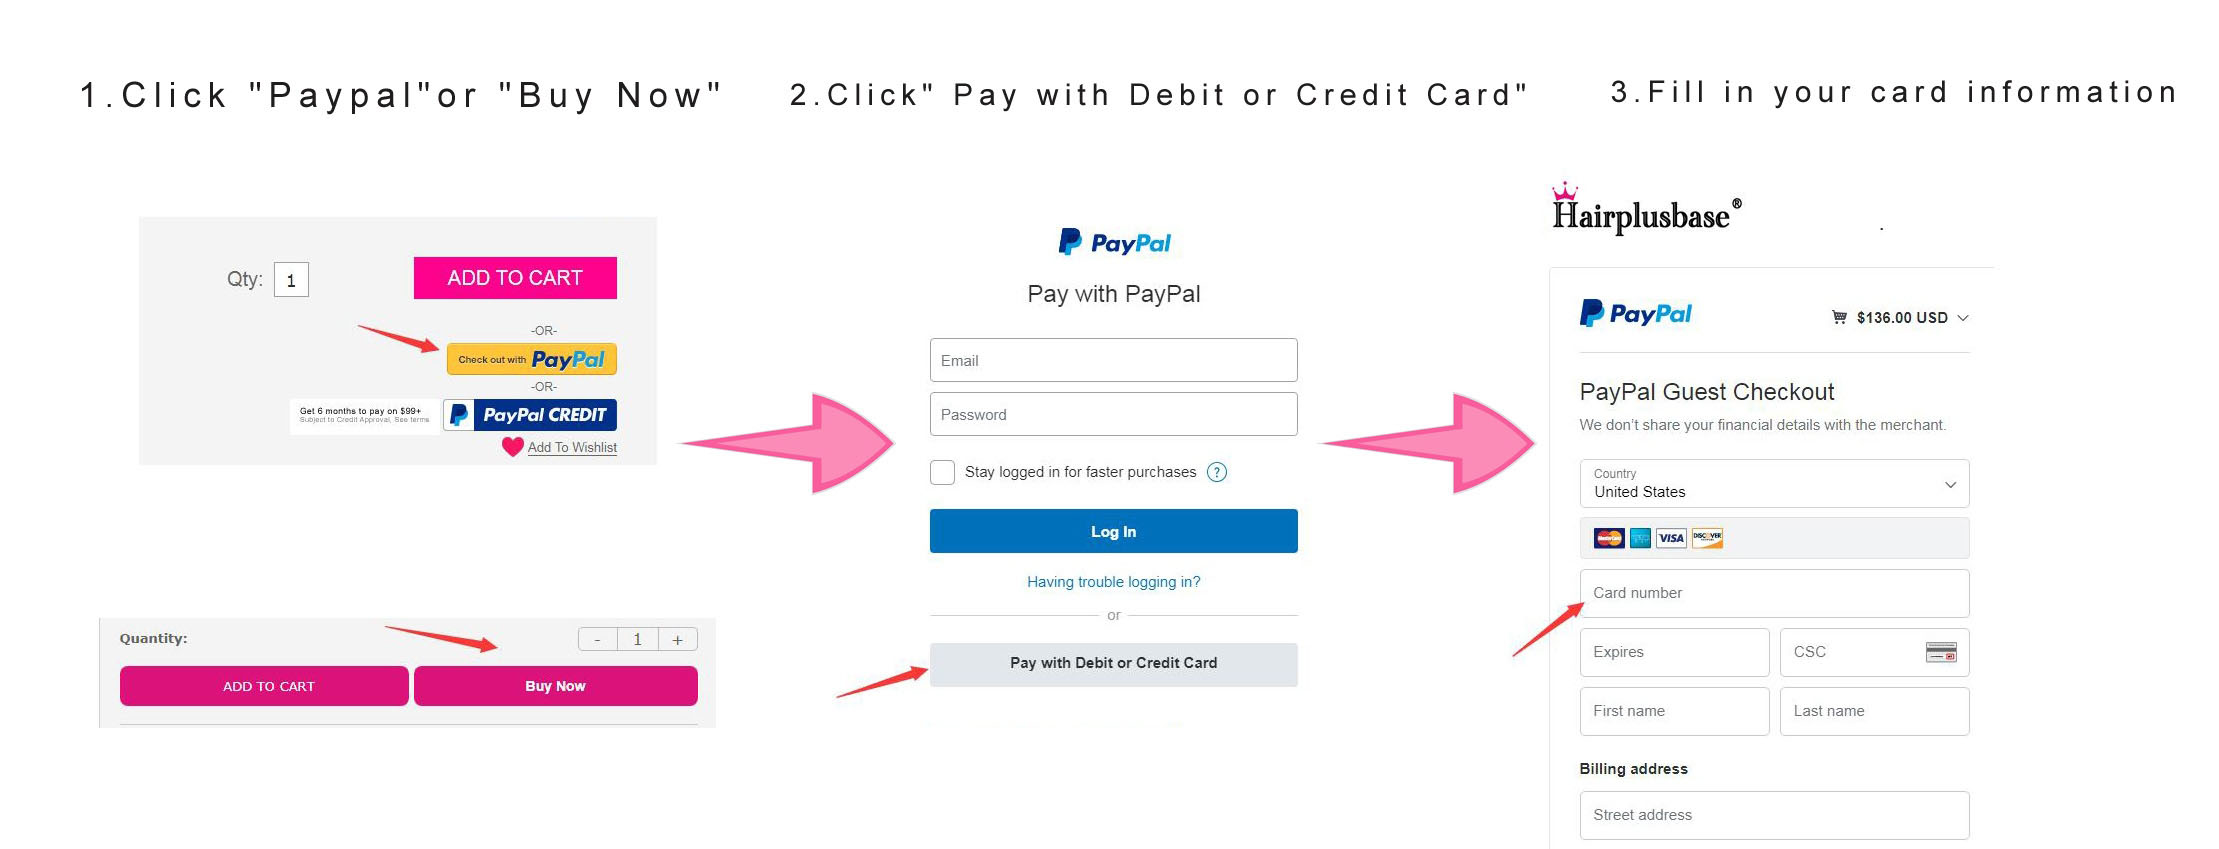 How to send payment via debit or credit card